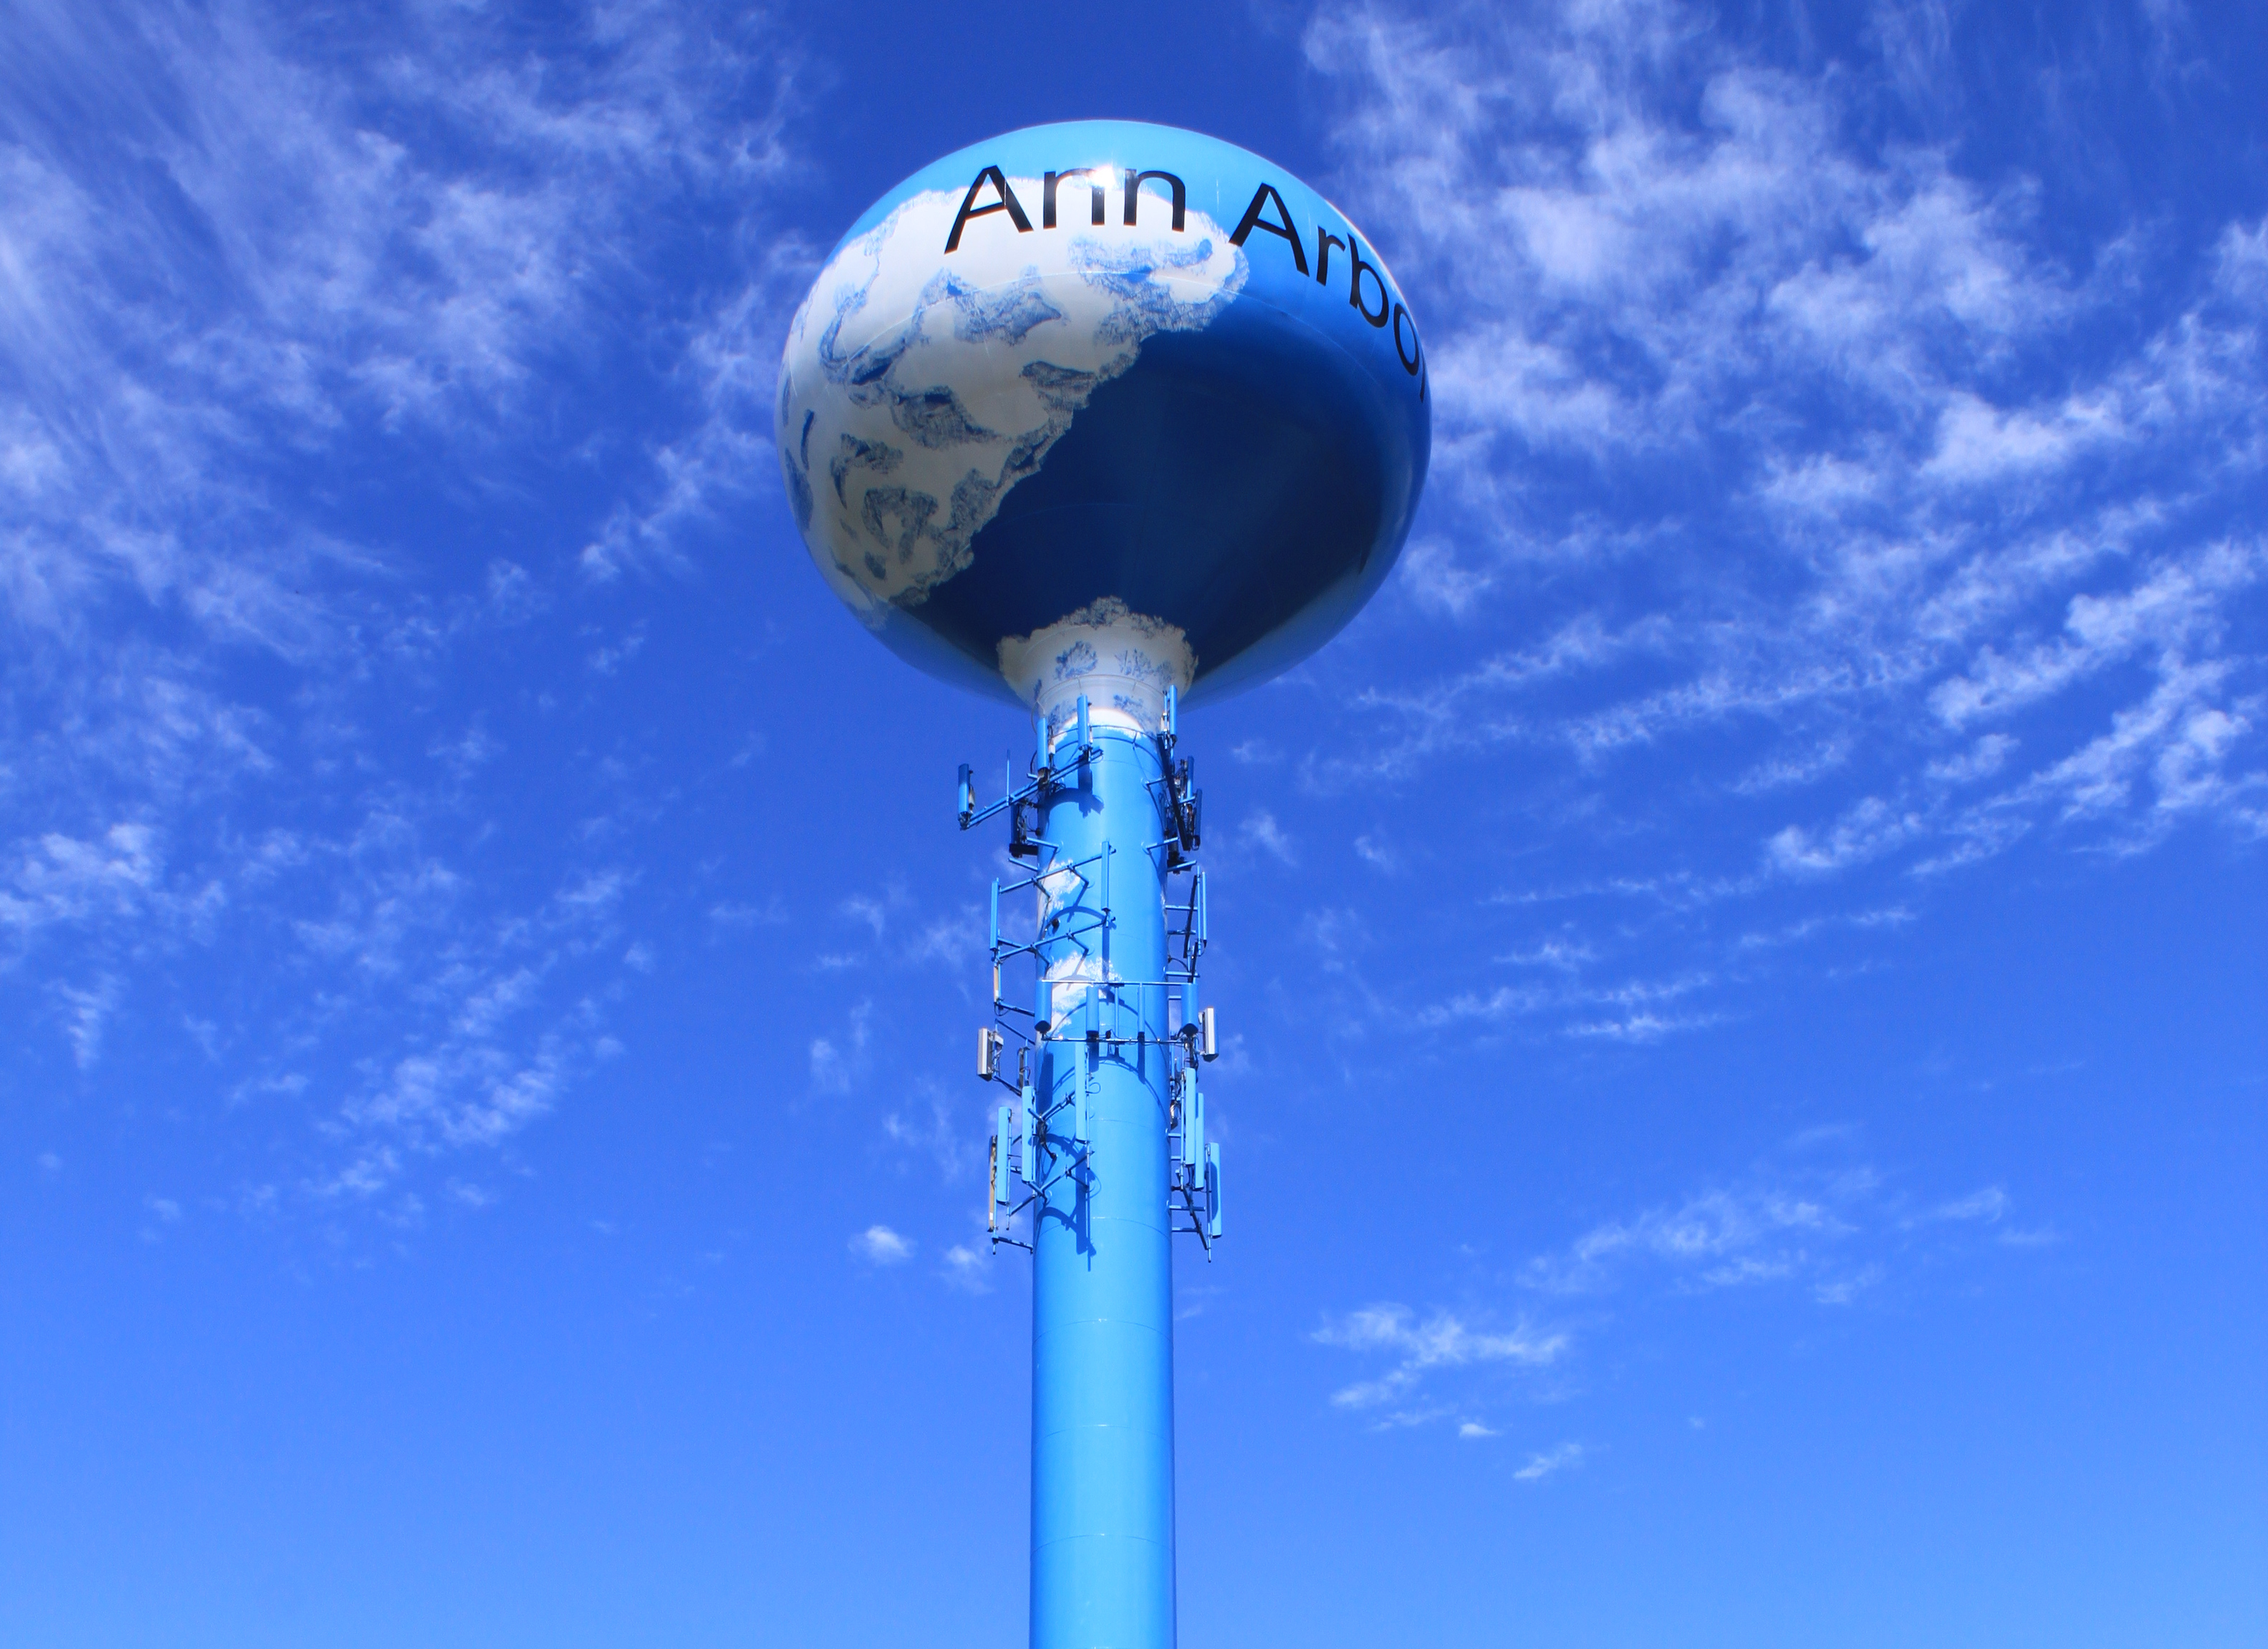 Water Tower in Ann Arbor, Michigan